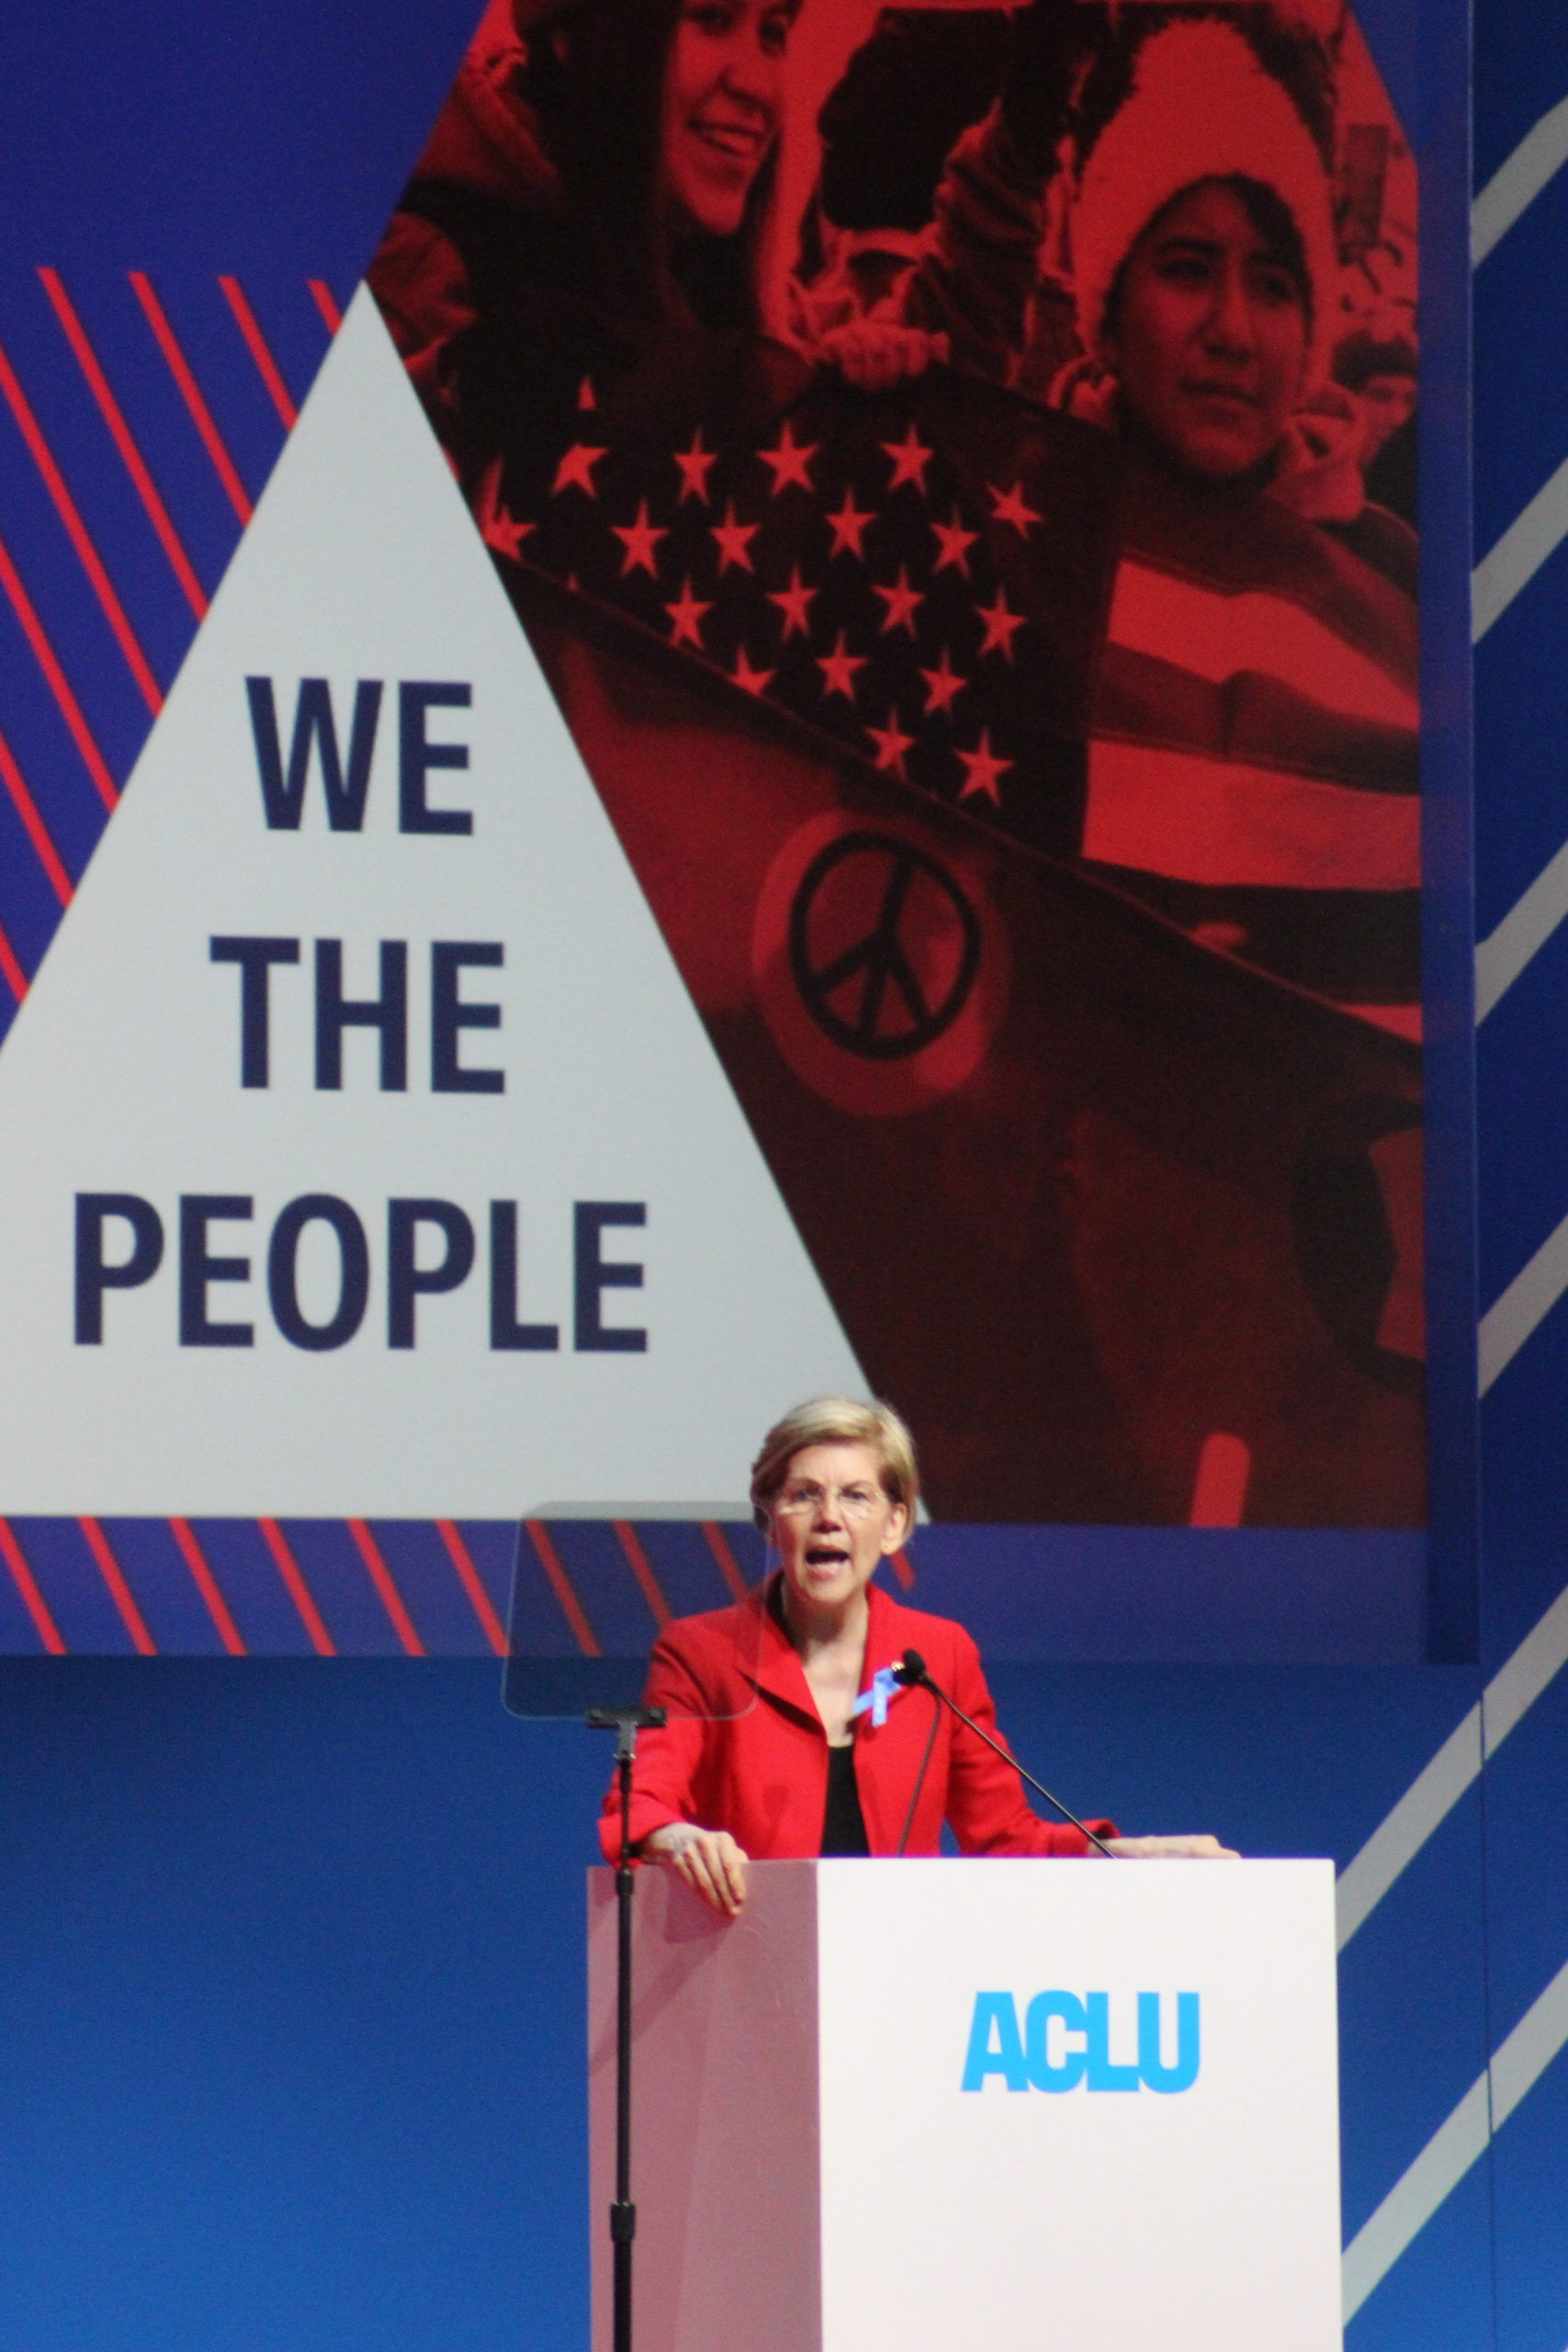 women in politics- Elizabeth Warren at the ACLU conference in 2018